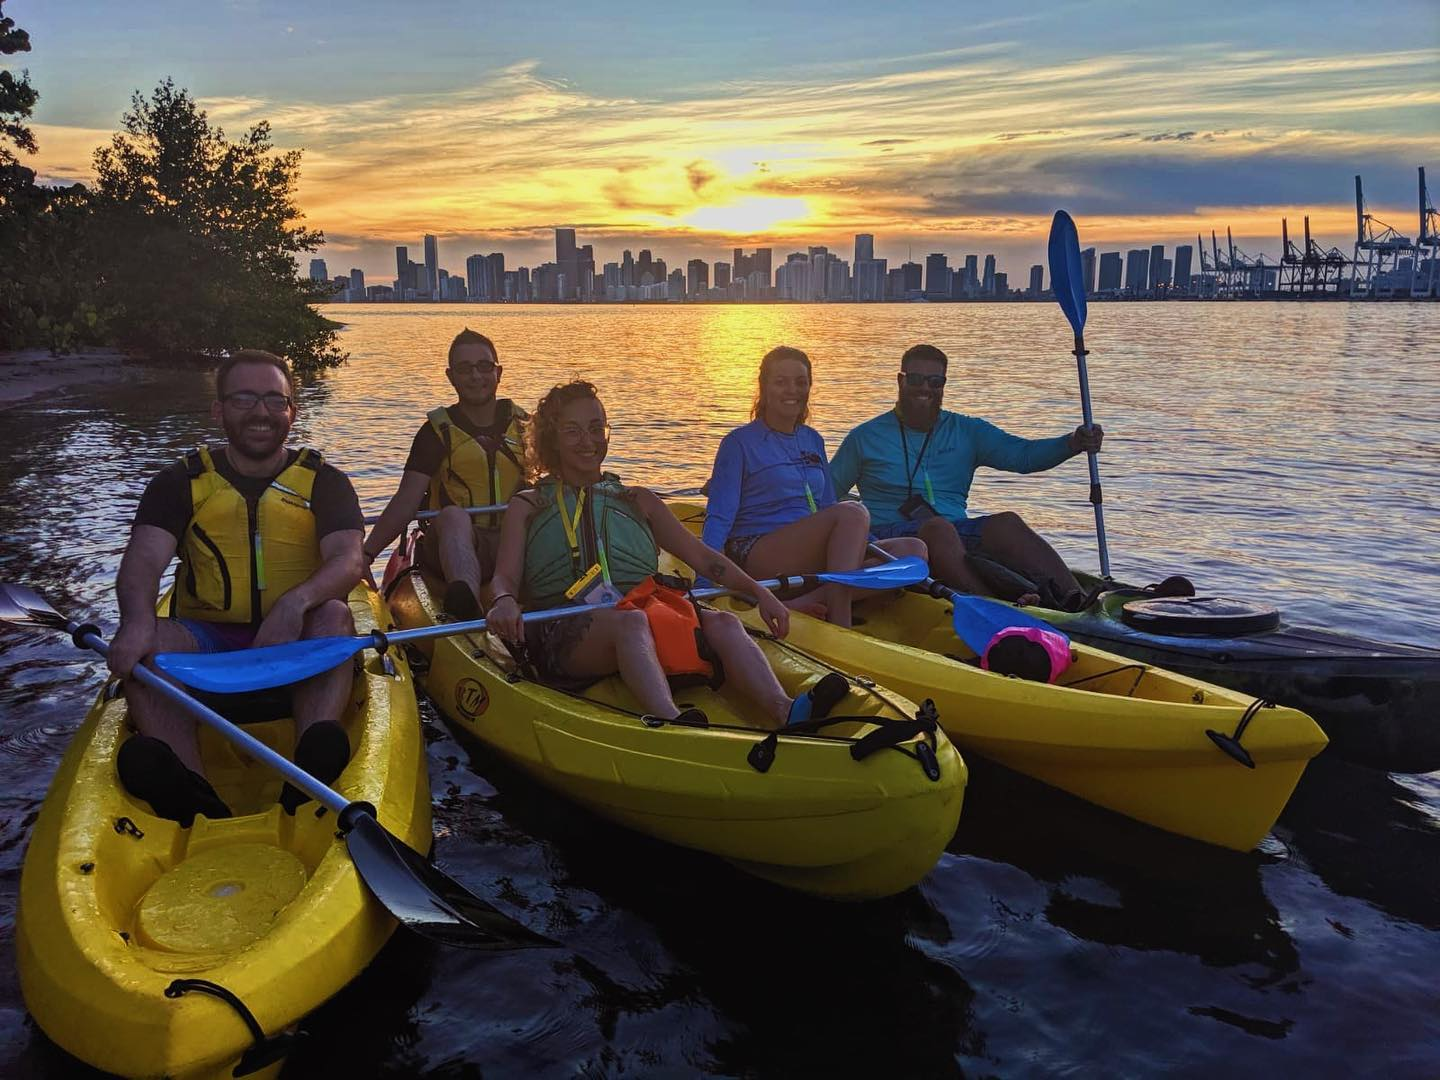 Sunset Kayak & Paddleboard Adventure Tours - April 17th and 24th, May 8th, 15th and 22nd